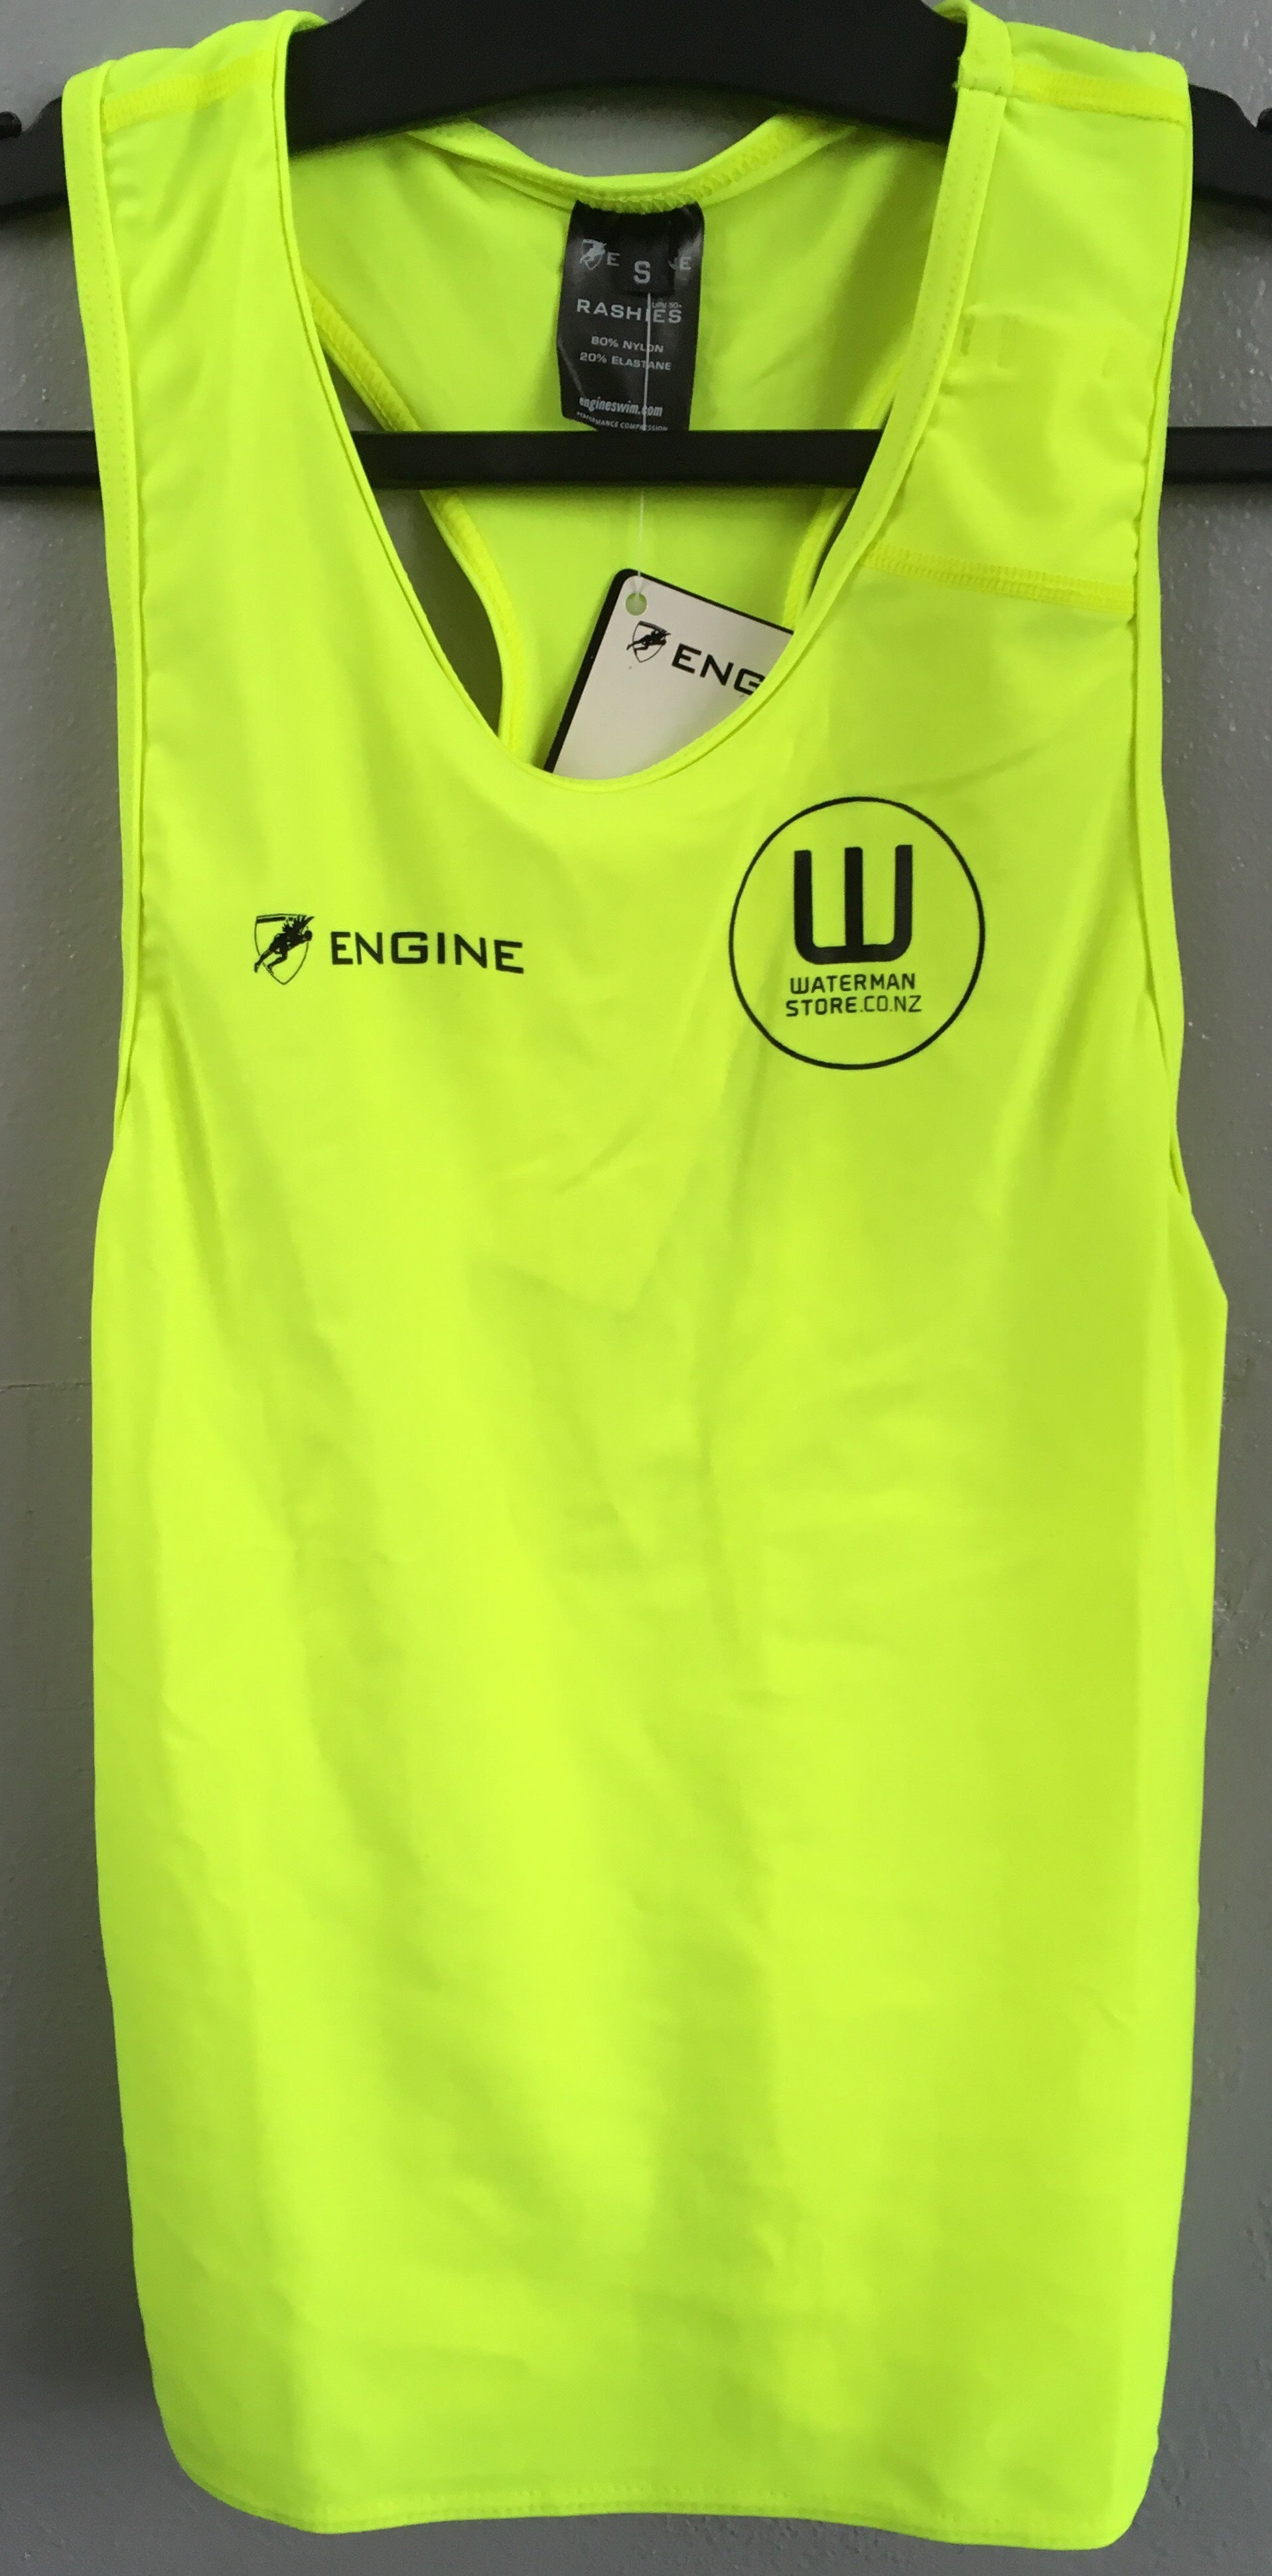 Waterman Store Hi Vis Competition Rashie